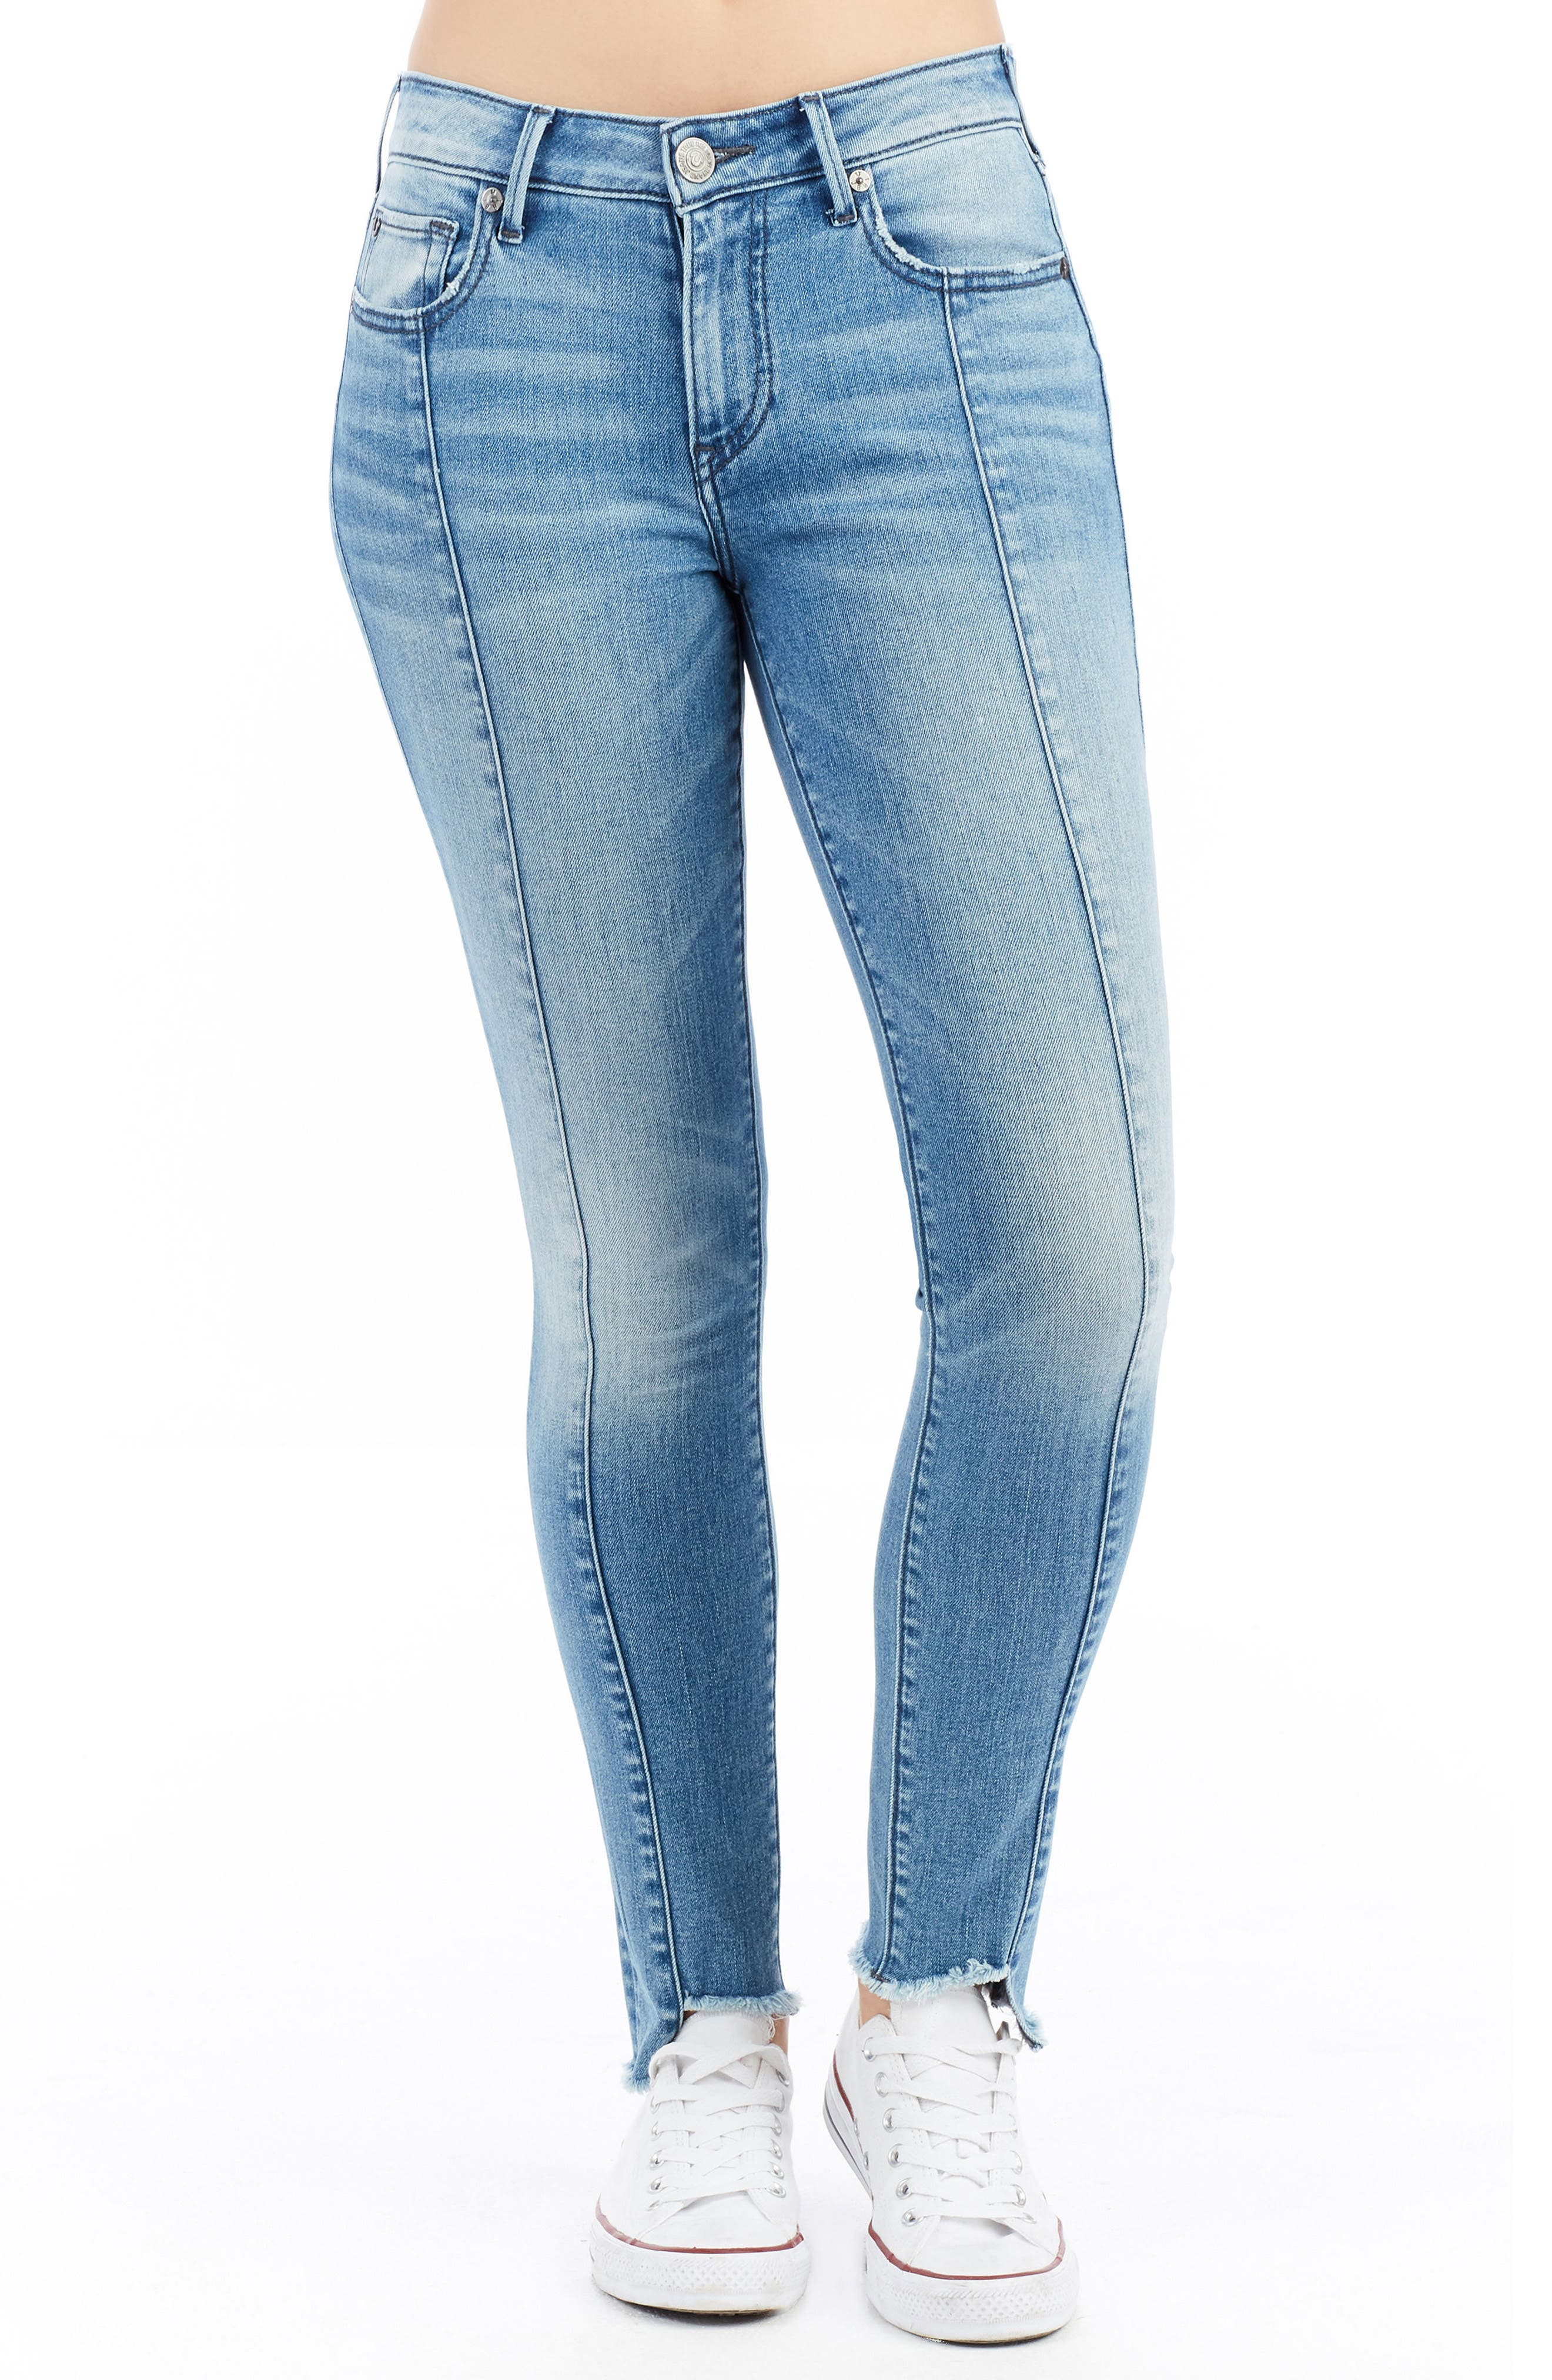 Jennie Curvy Ankle Skinny Jeans,                         Main,                         color, 401